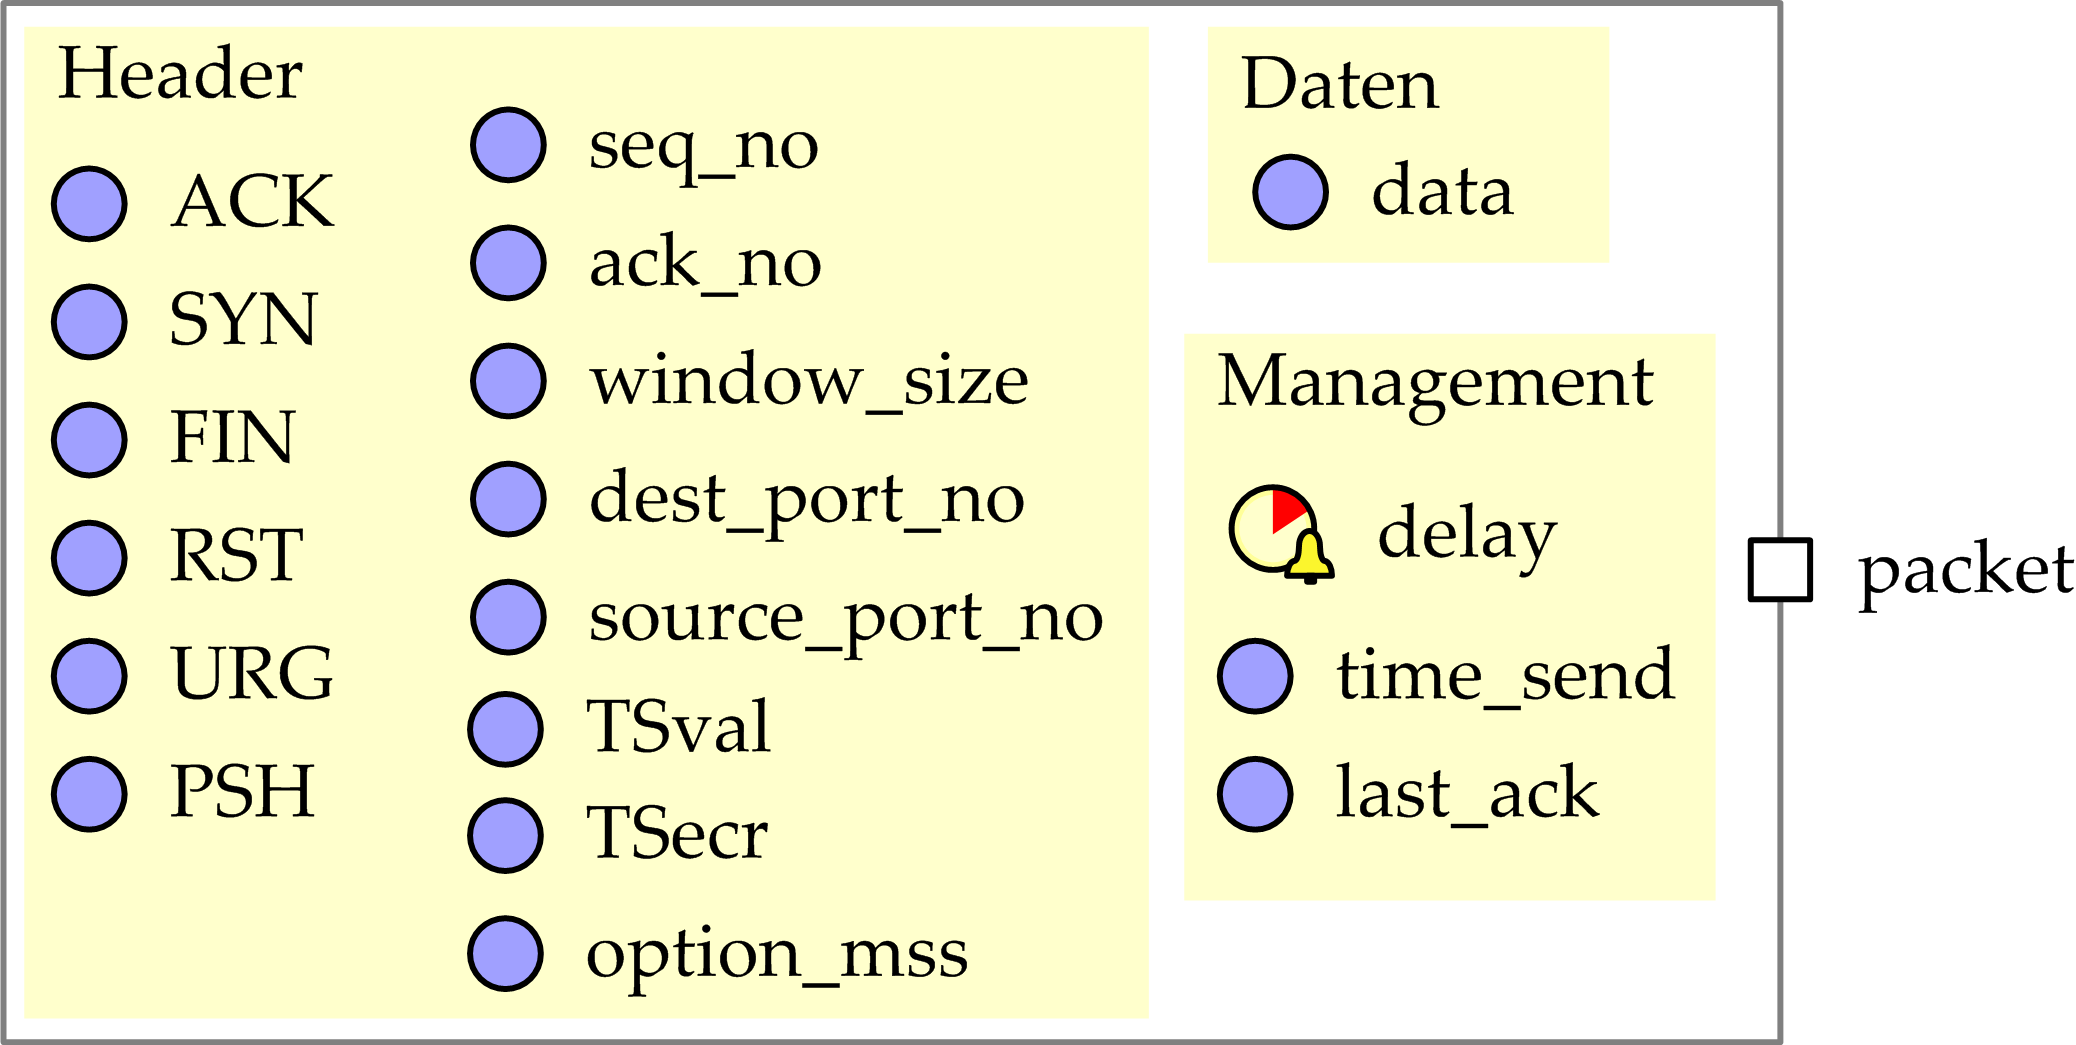 7.2 TCP frame. The receive and send ports are used to transfer data to and from the application, while the error port is used to inform the application about TCP errors.